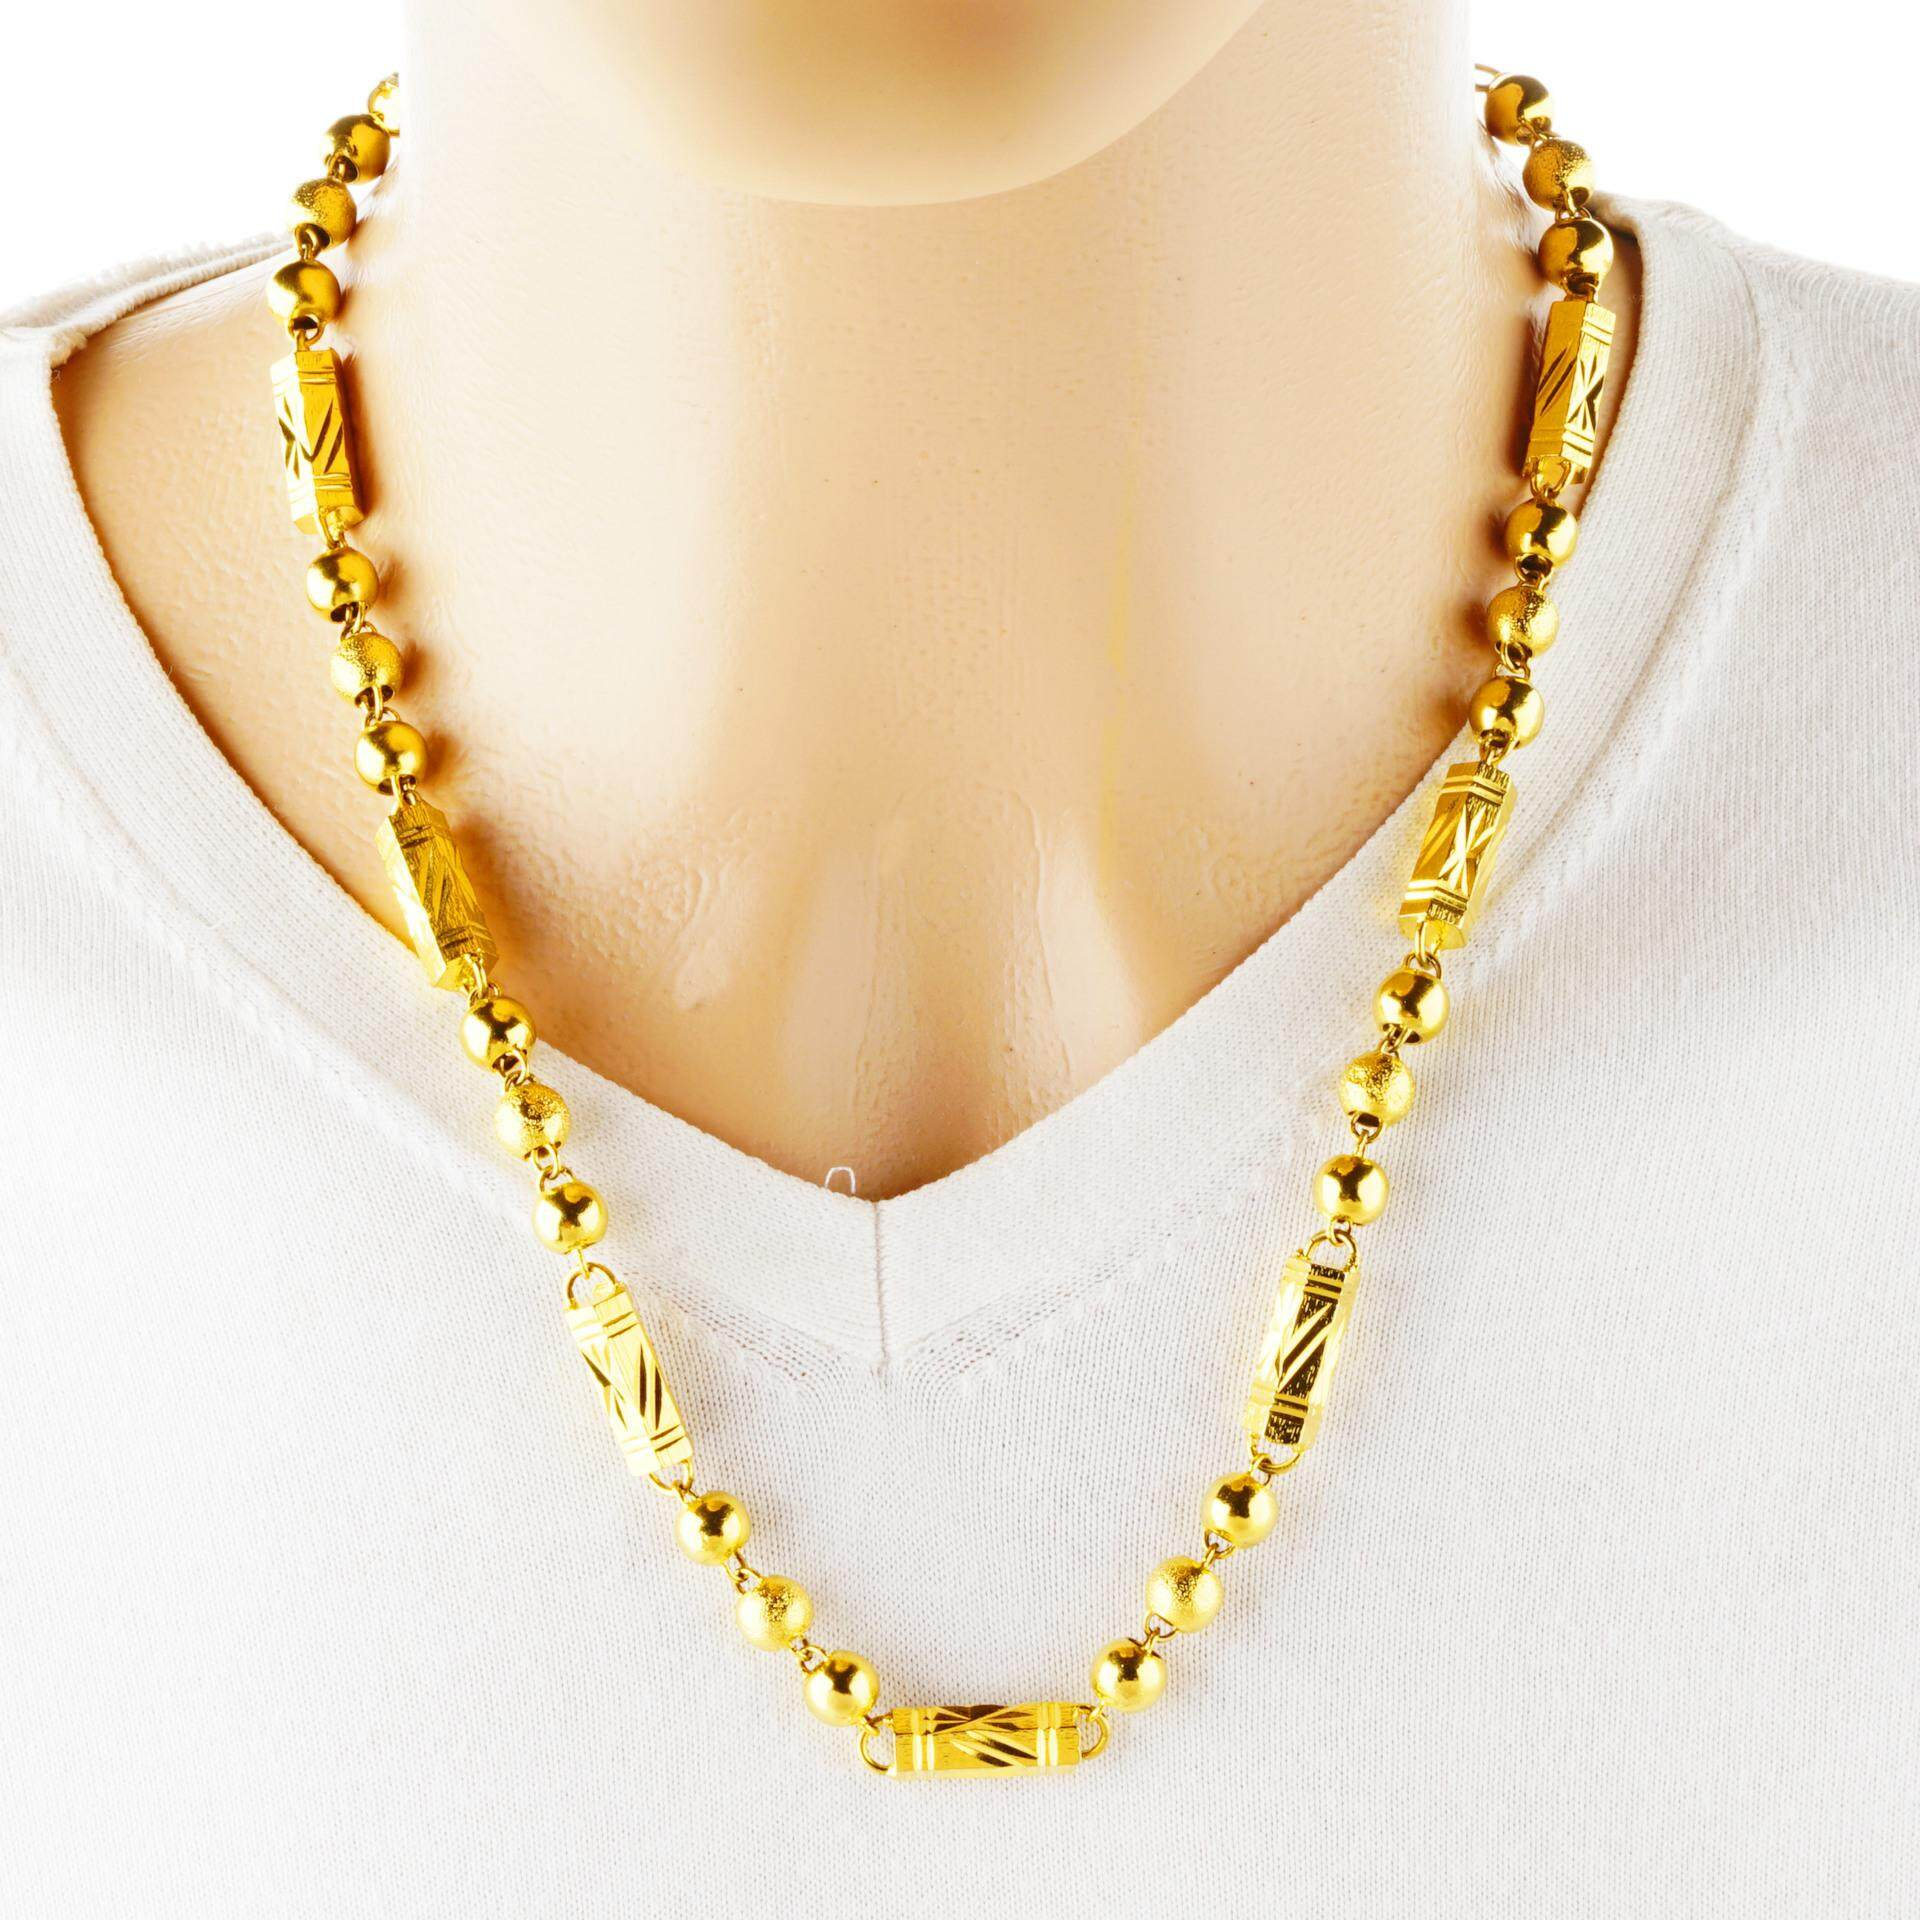 2724964512c74 Europe And America Exaggeration Hexagon Buddhist Prayer Bead Solid Necklace  Male Gold Plated Men Hexagon Prism Bamboo Joint Necklace Alluvial Gold